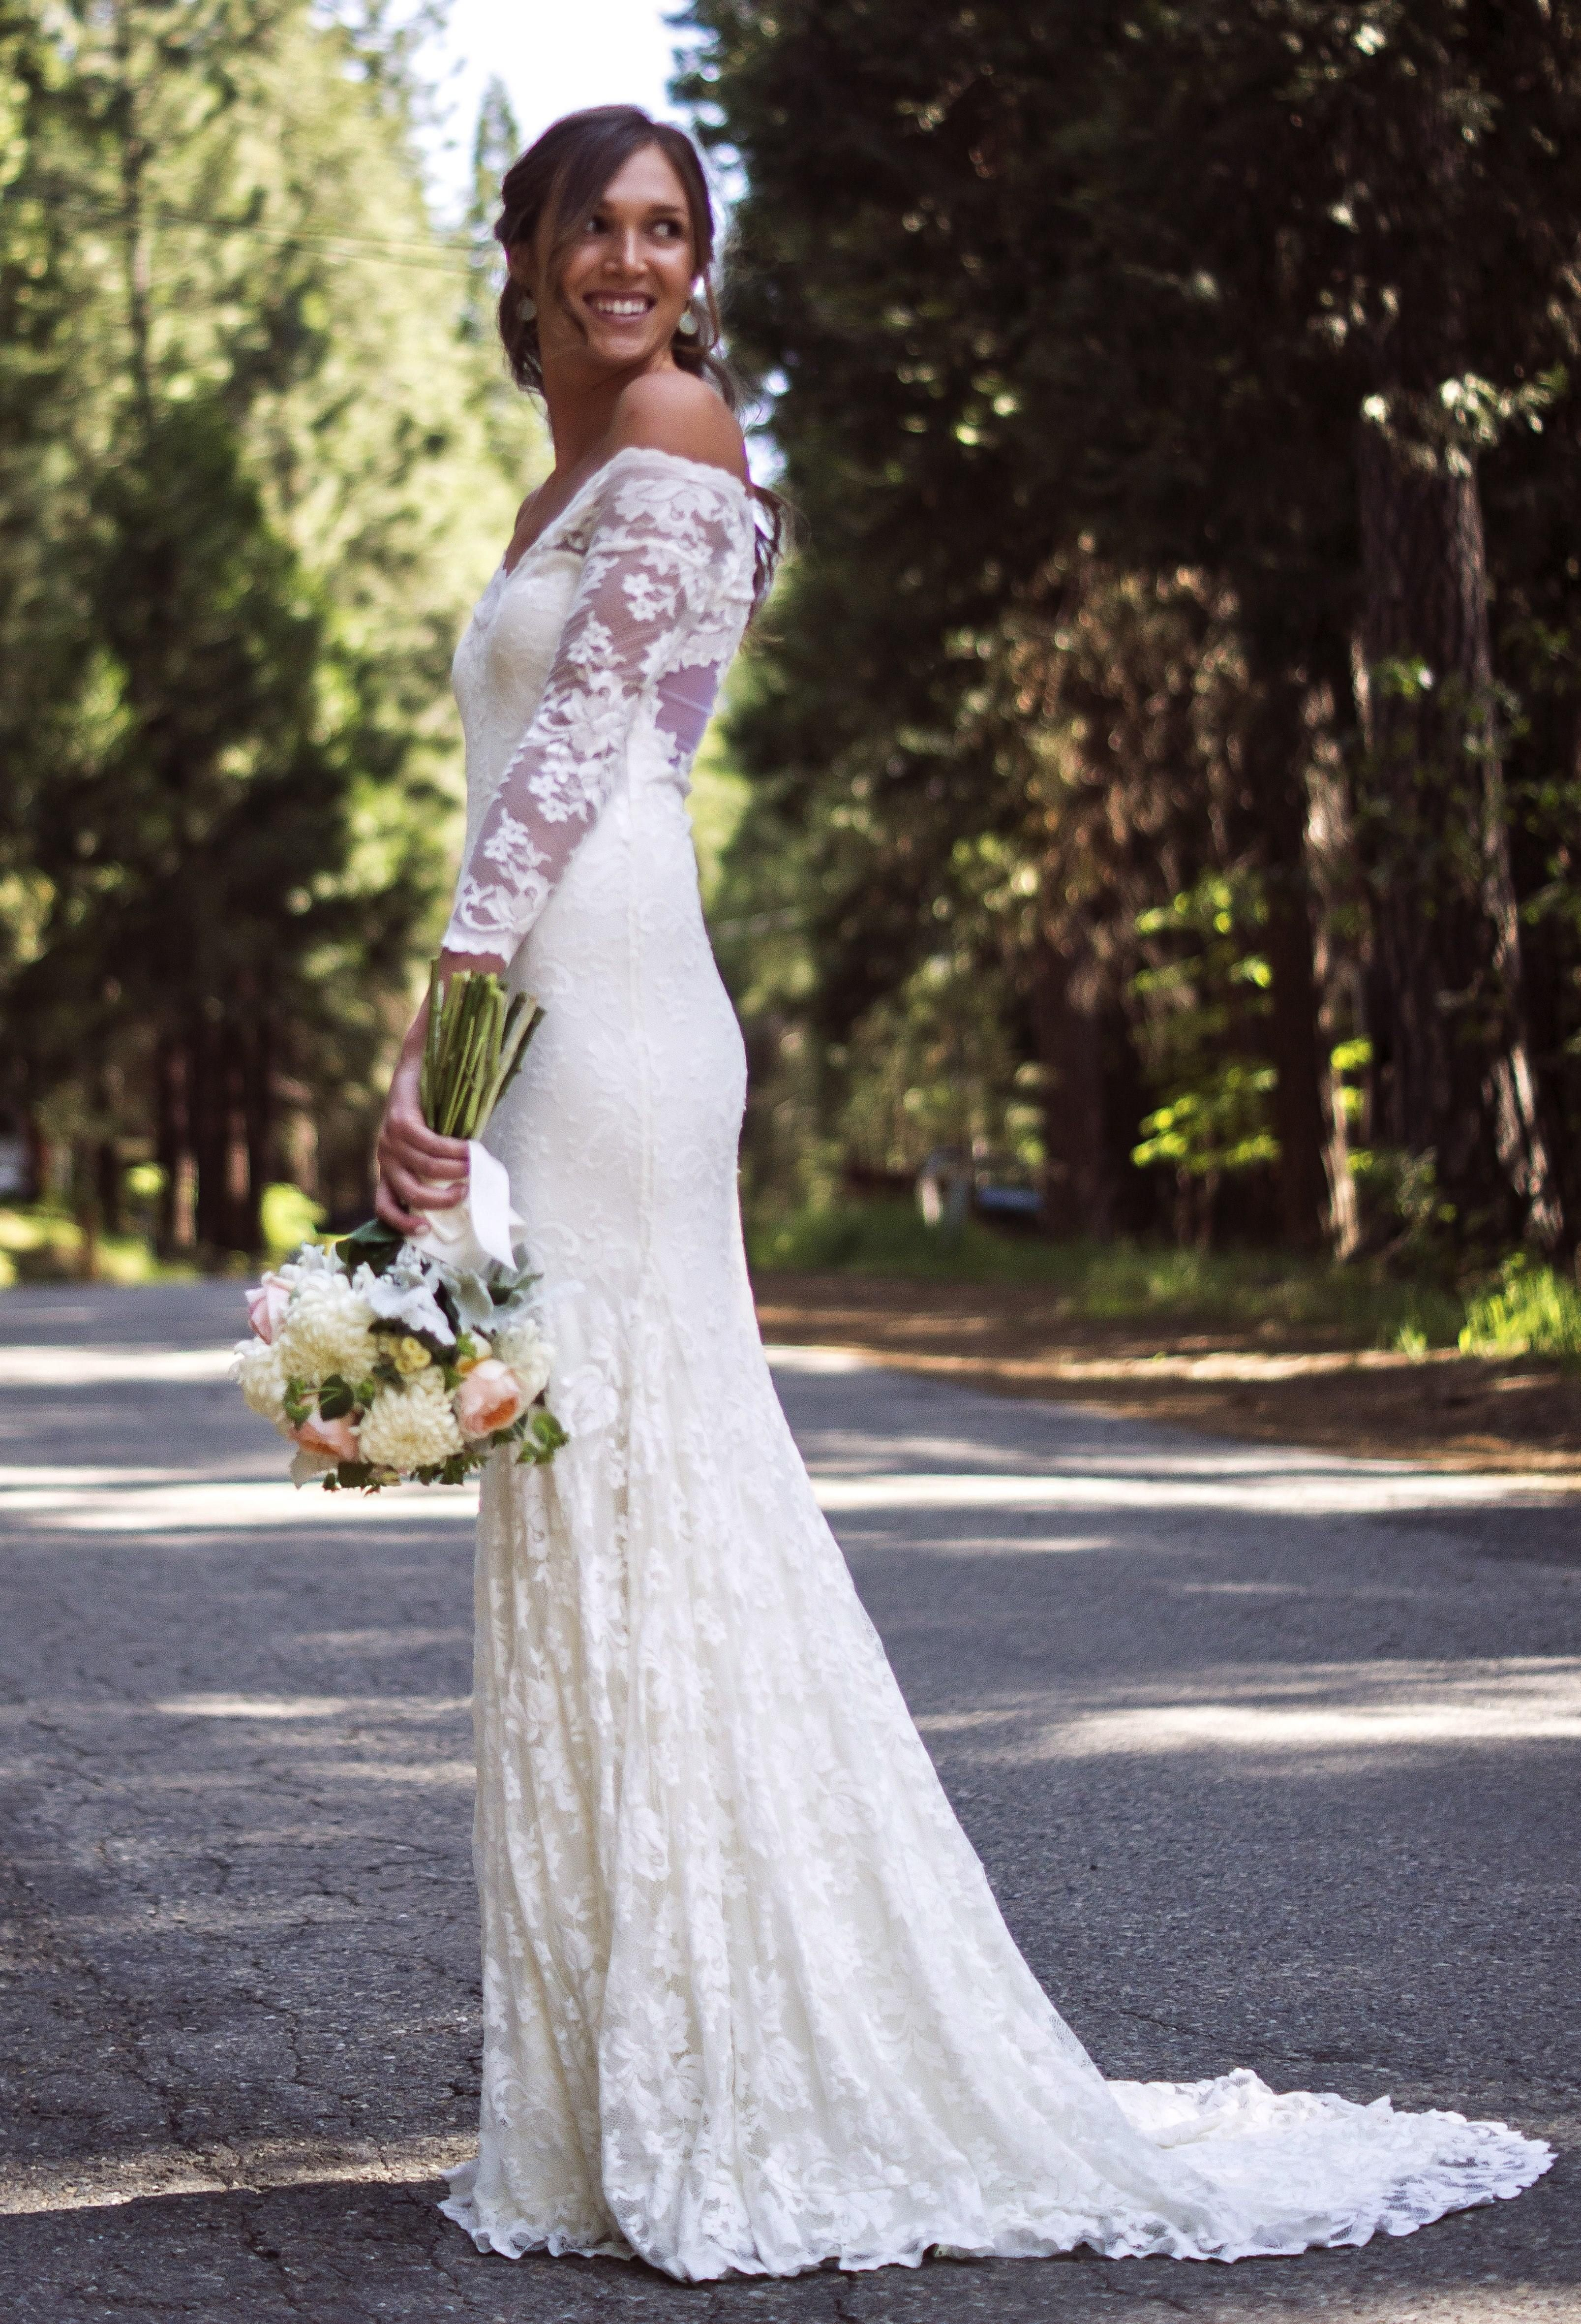 Used Olvi Style 1399 Off The Shoulders Lace Wedding Dress Size 8 For 1500 You Saved 37 Retail Find Perfect Preowned At Oncewed